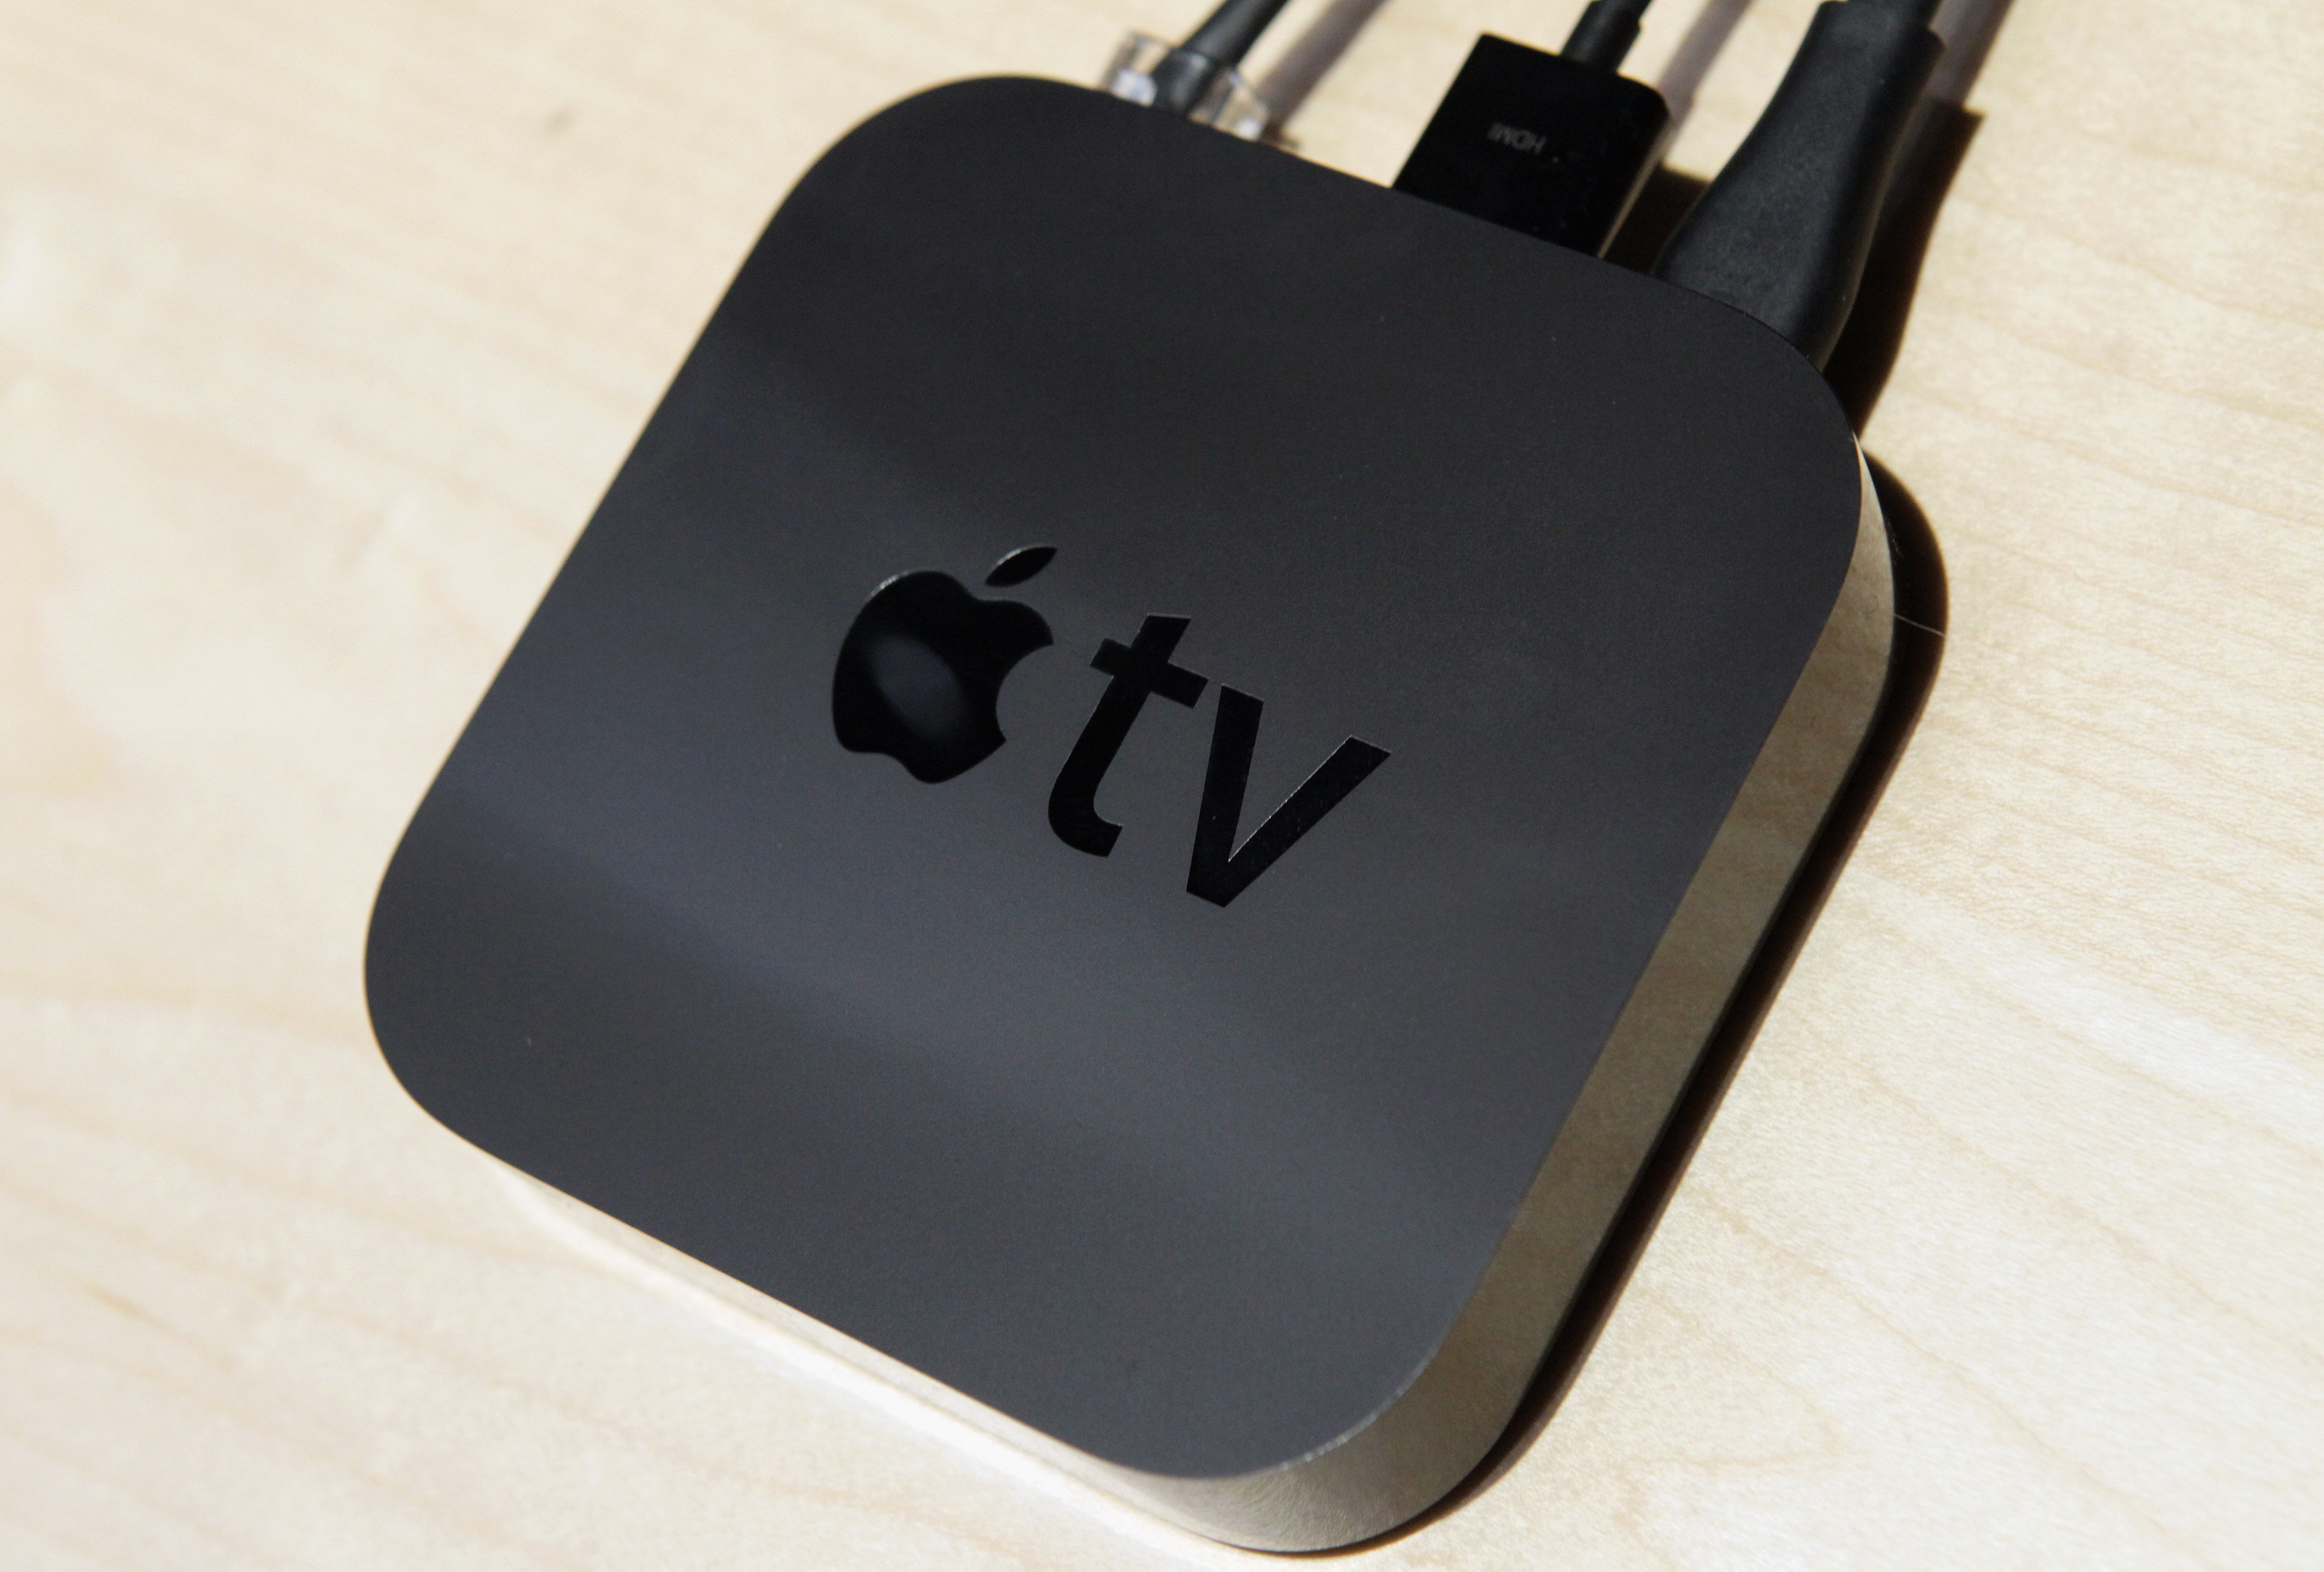 The new smaller version of Apple TV is displayed at an Apple Special Event at the Yerba Buena Center for the Arts September 1, 2010 in San Francisco, California.